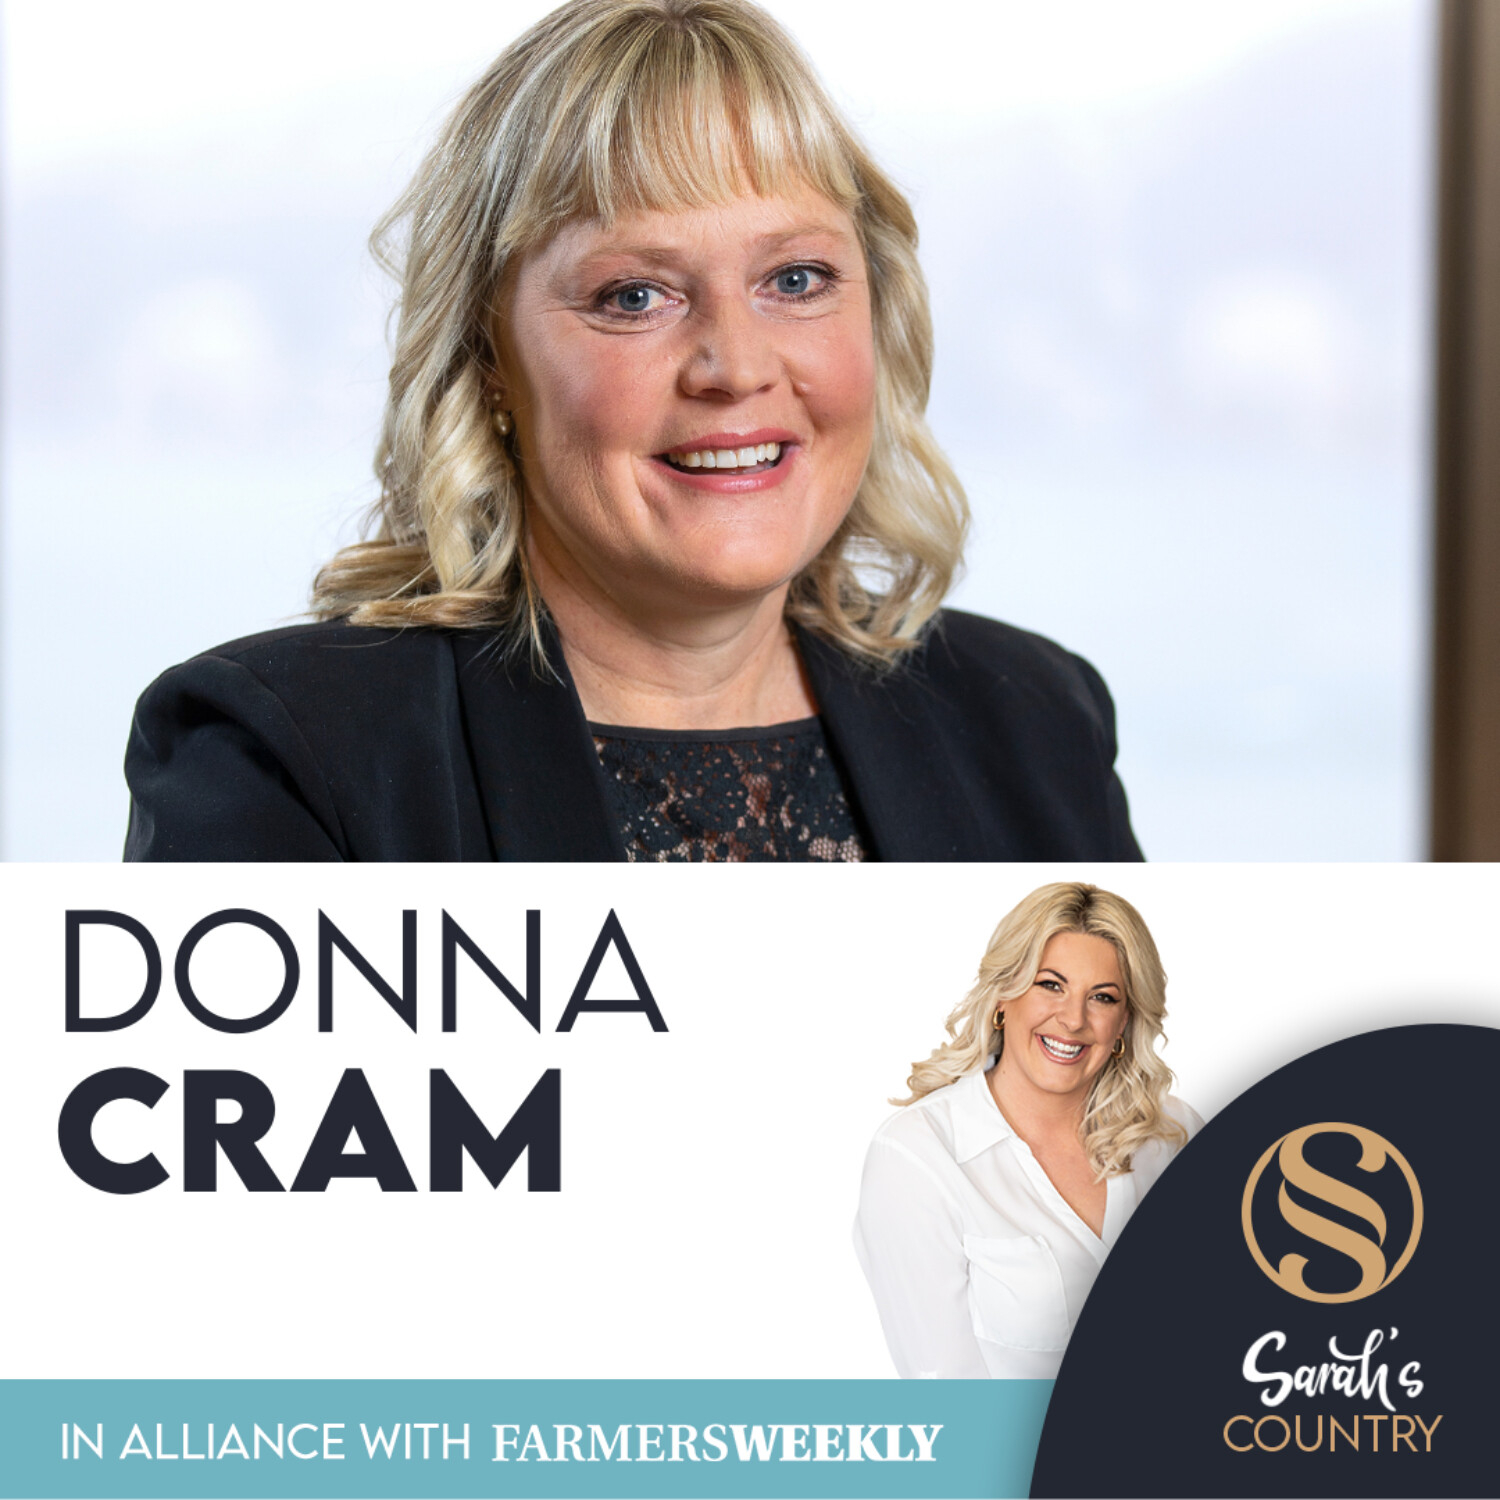 Donna Cram | Farmers leading transition to a more sustainable future